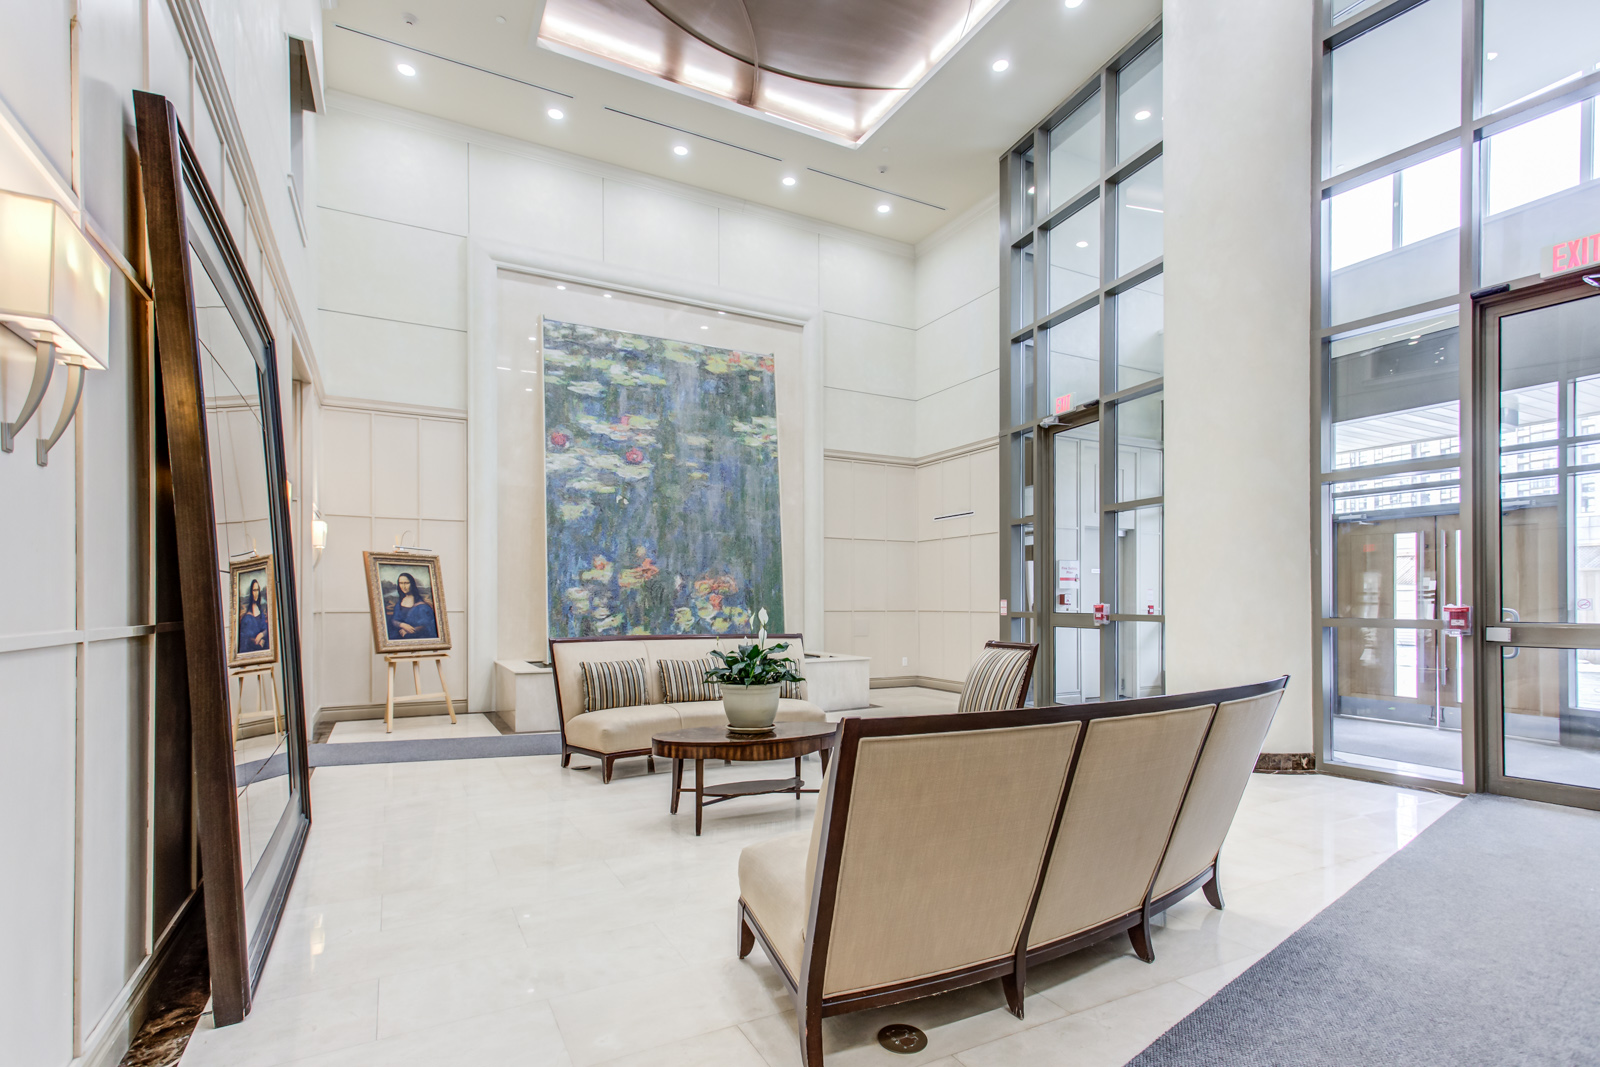 18 Holmes Avenue Lobby with portrait of Mona Lisa Residences